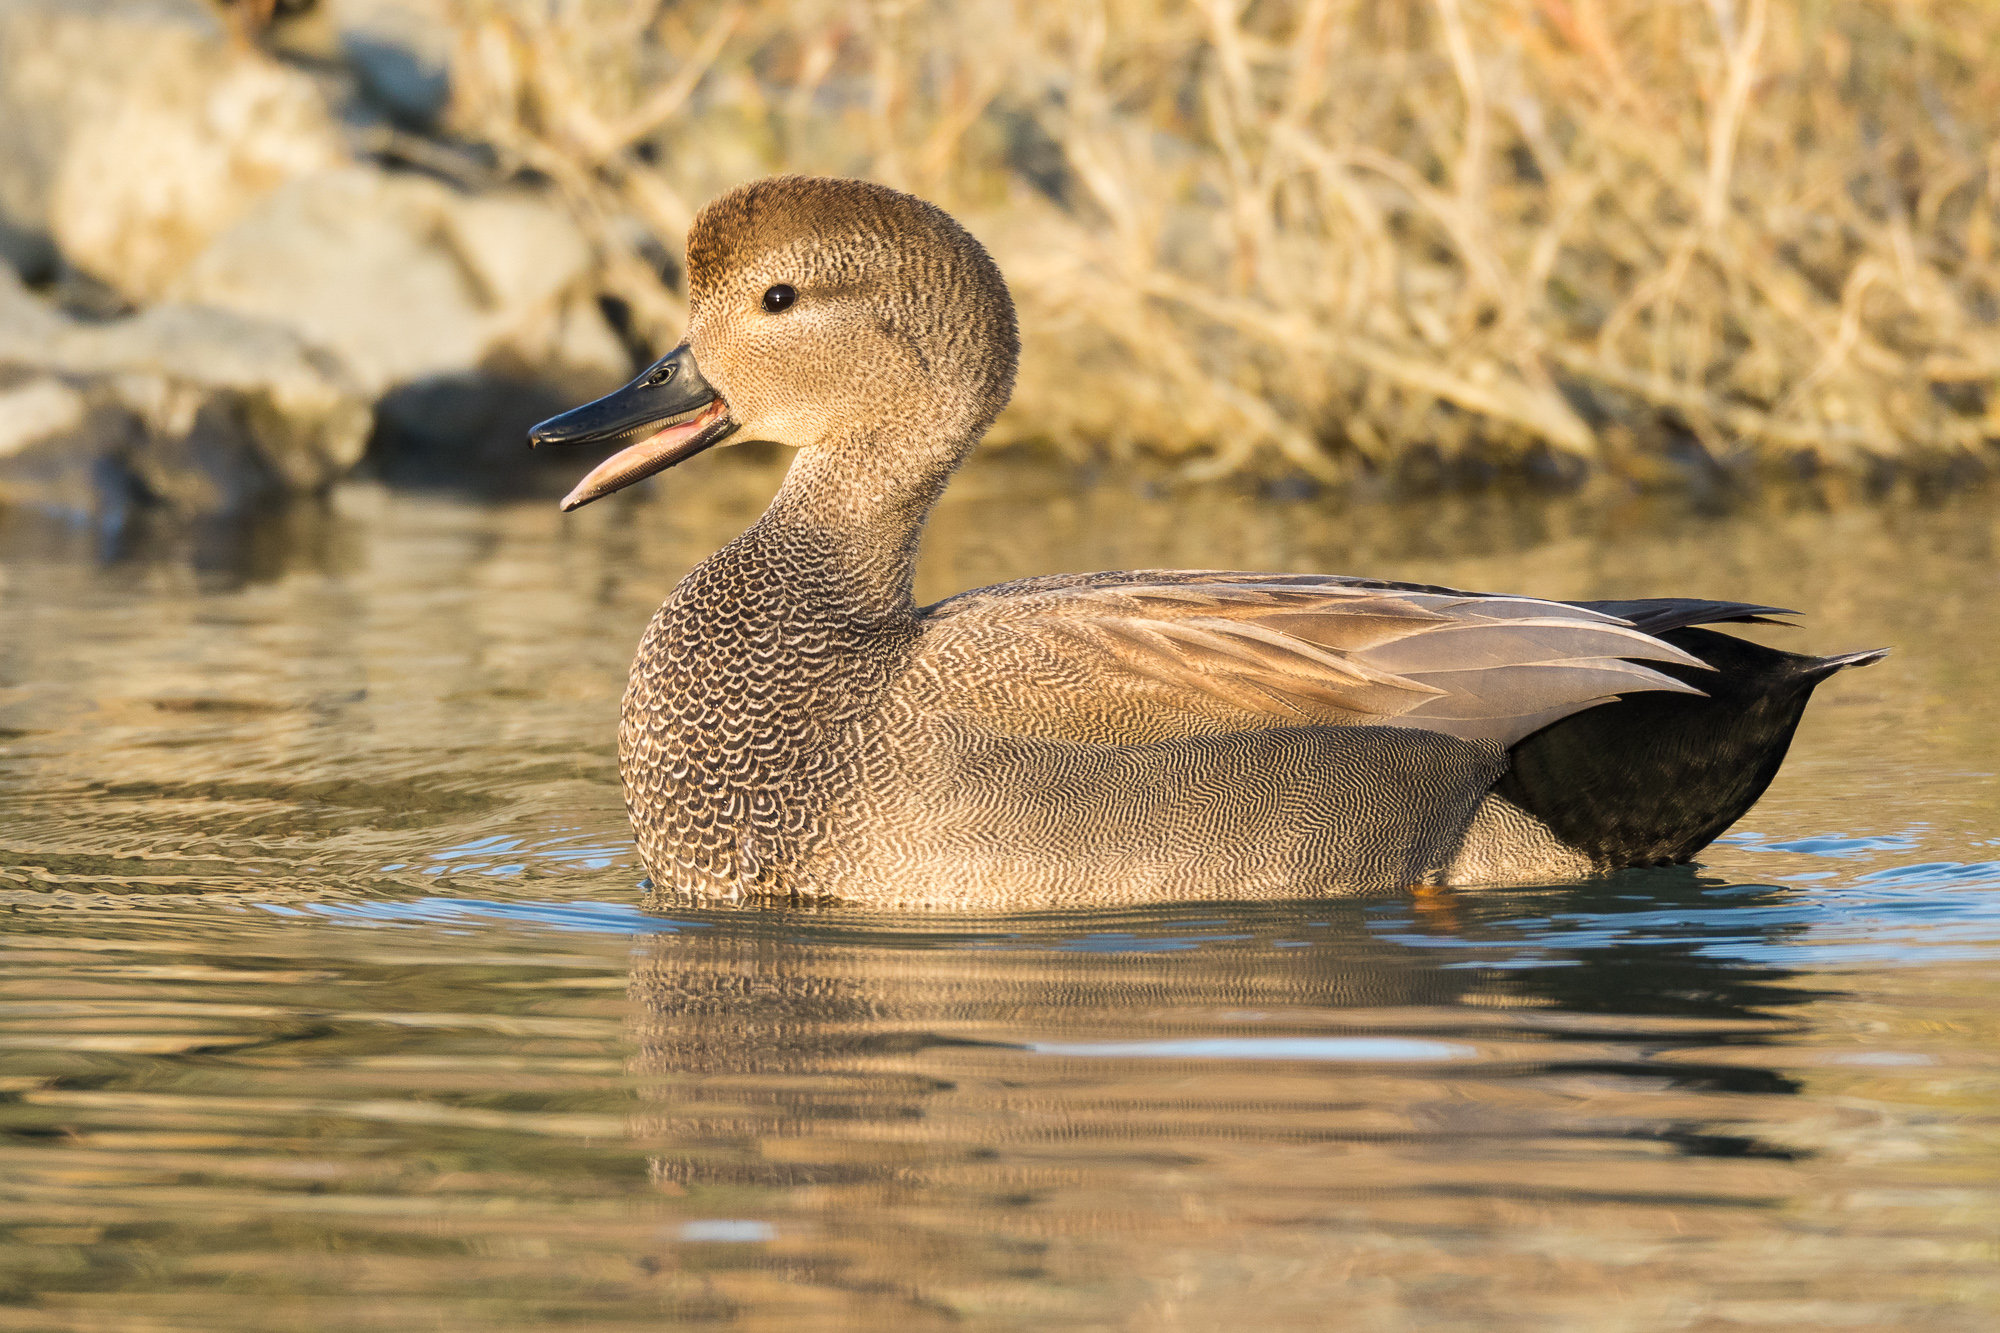 A gadwall swims through shallow, calm water, Redwood Shores, CA.